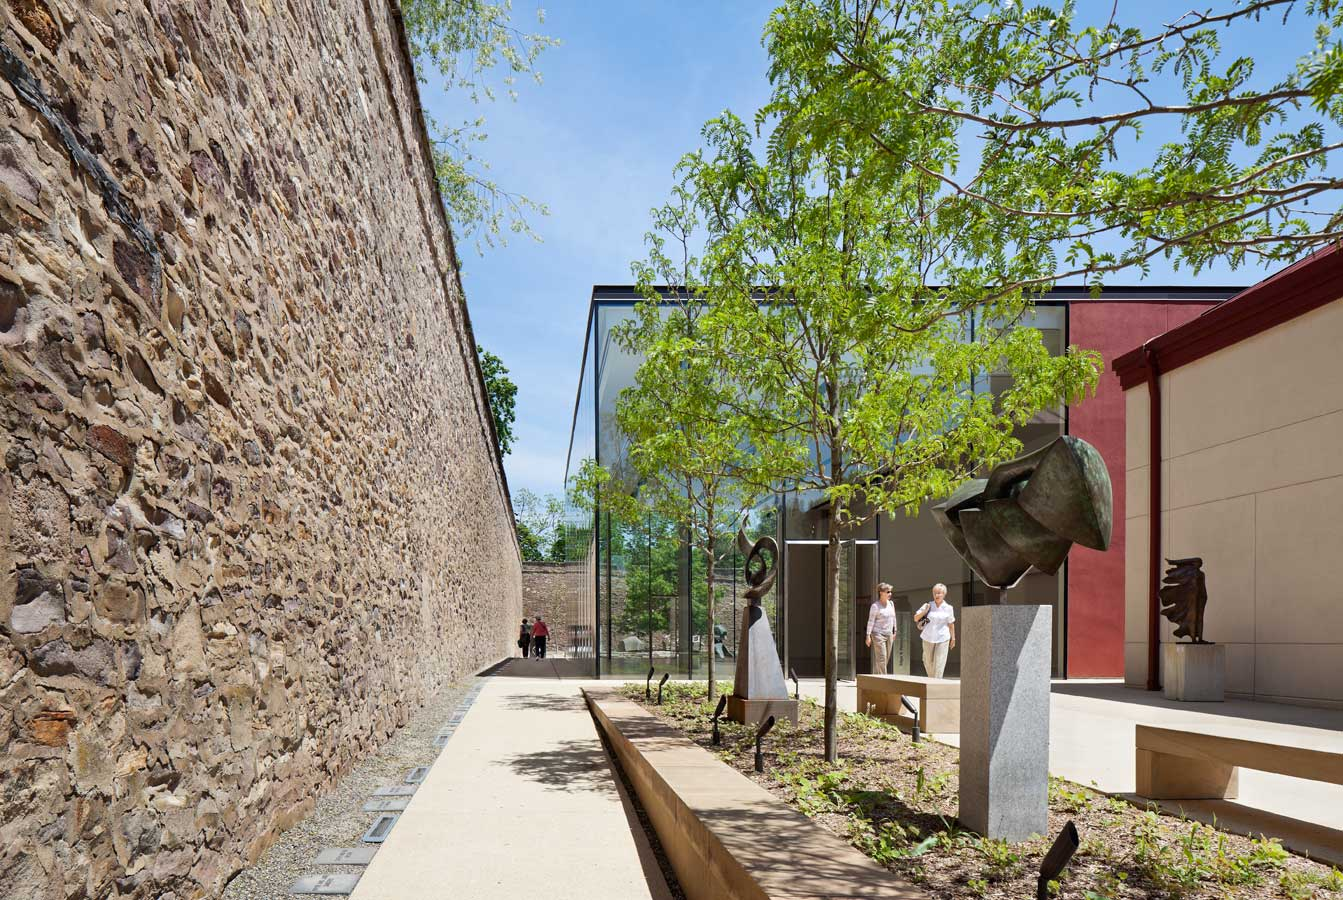 <p>The stone wall of the former prison appears to enter the space through the uninterrupted glass walls of the pavilion, lending visual interest and historical reference to the structure. <br><small>© Michael Moran/OTTO</small></p>